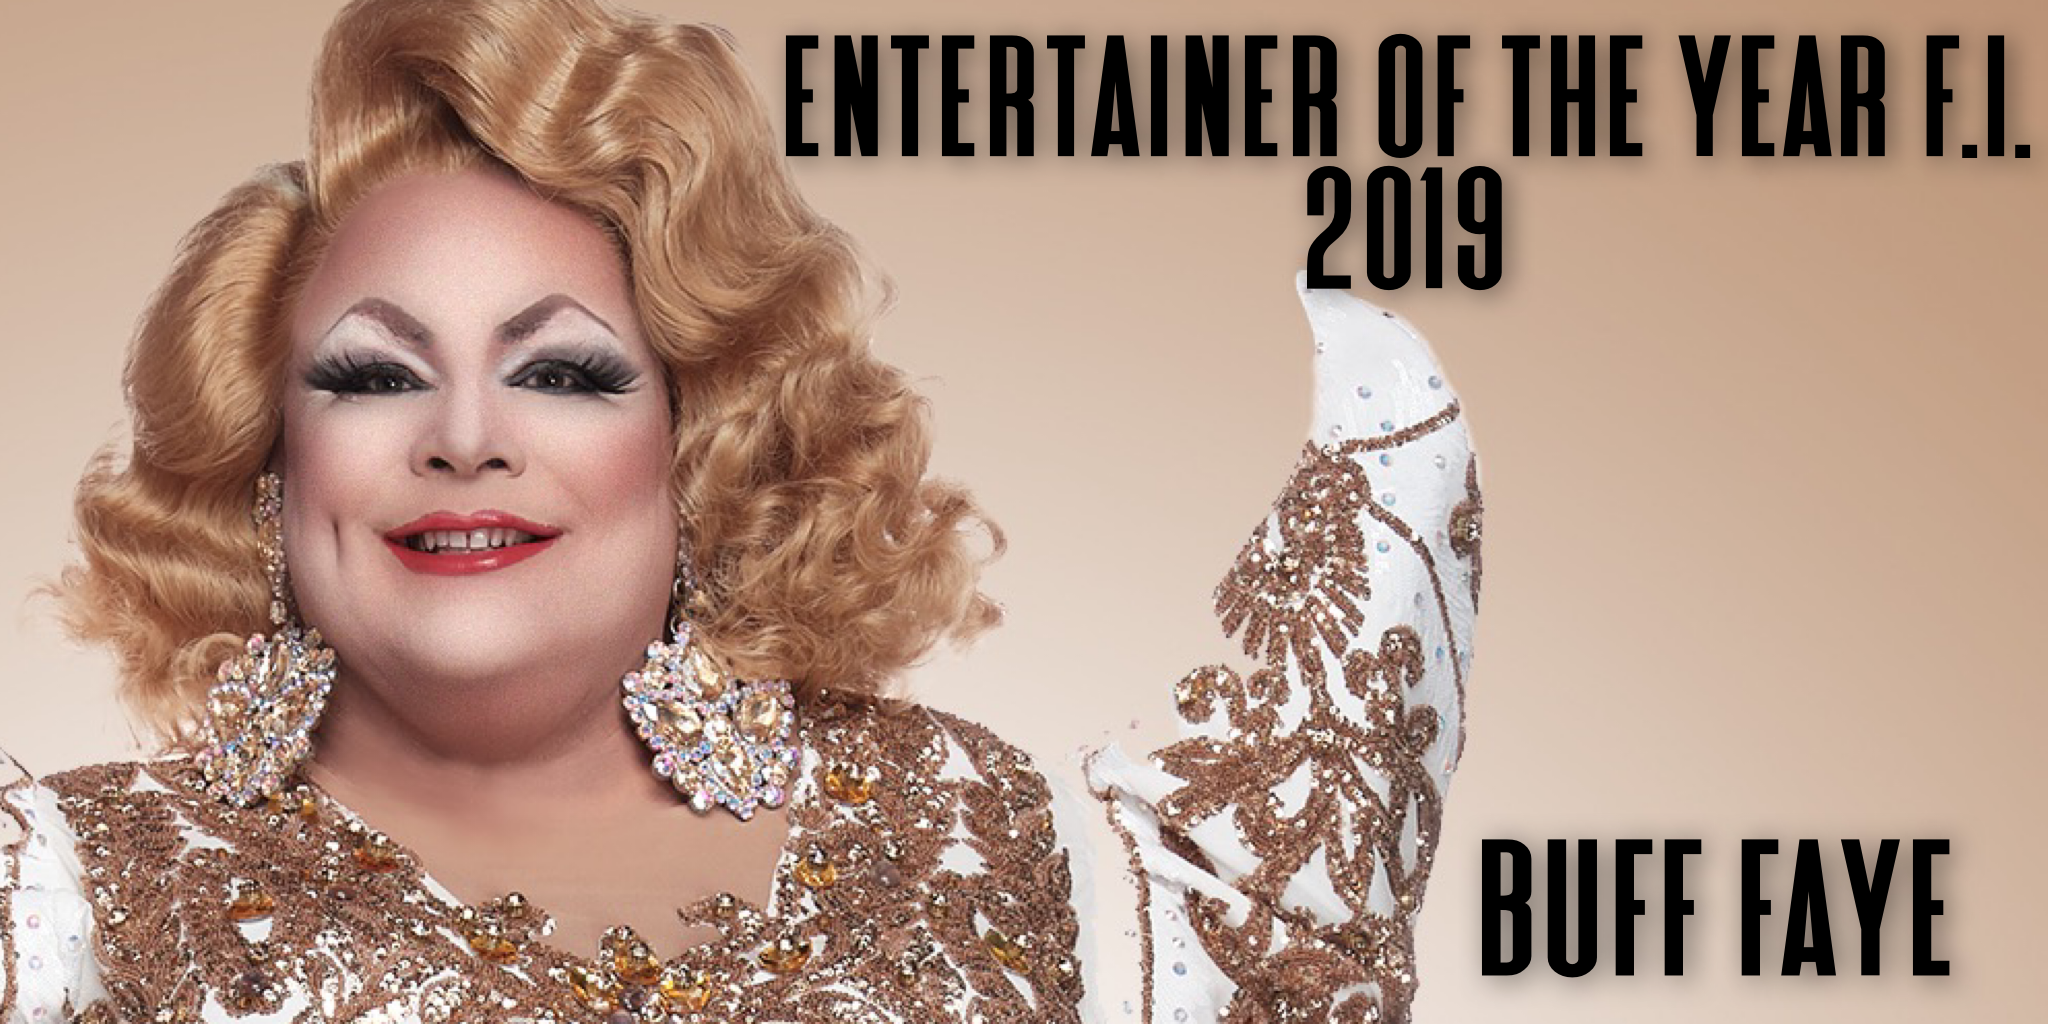 entertainer of the year, fi 2019 - (Finals & Preliminary night) - Available for Streaming or Pay per view